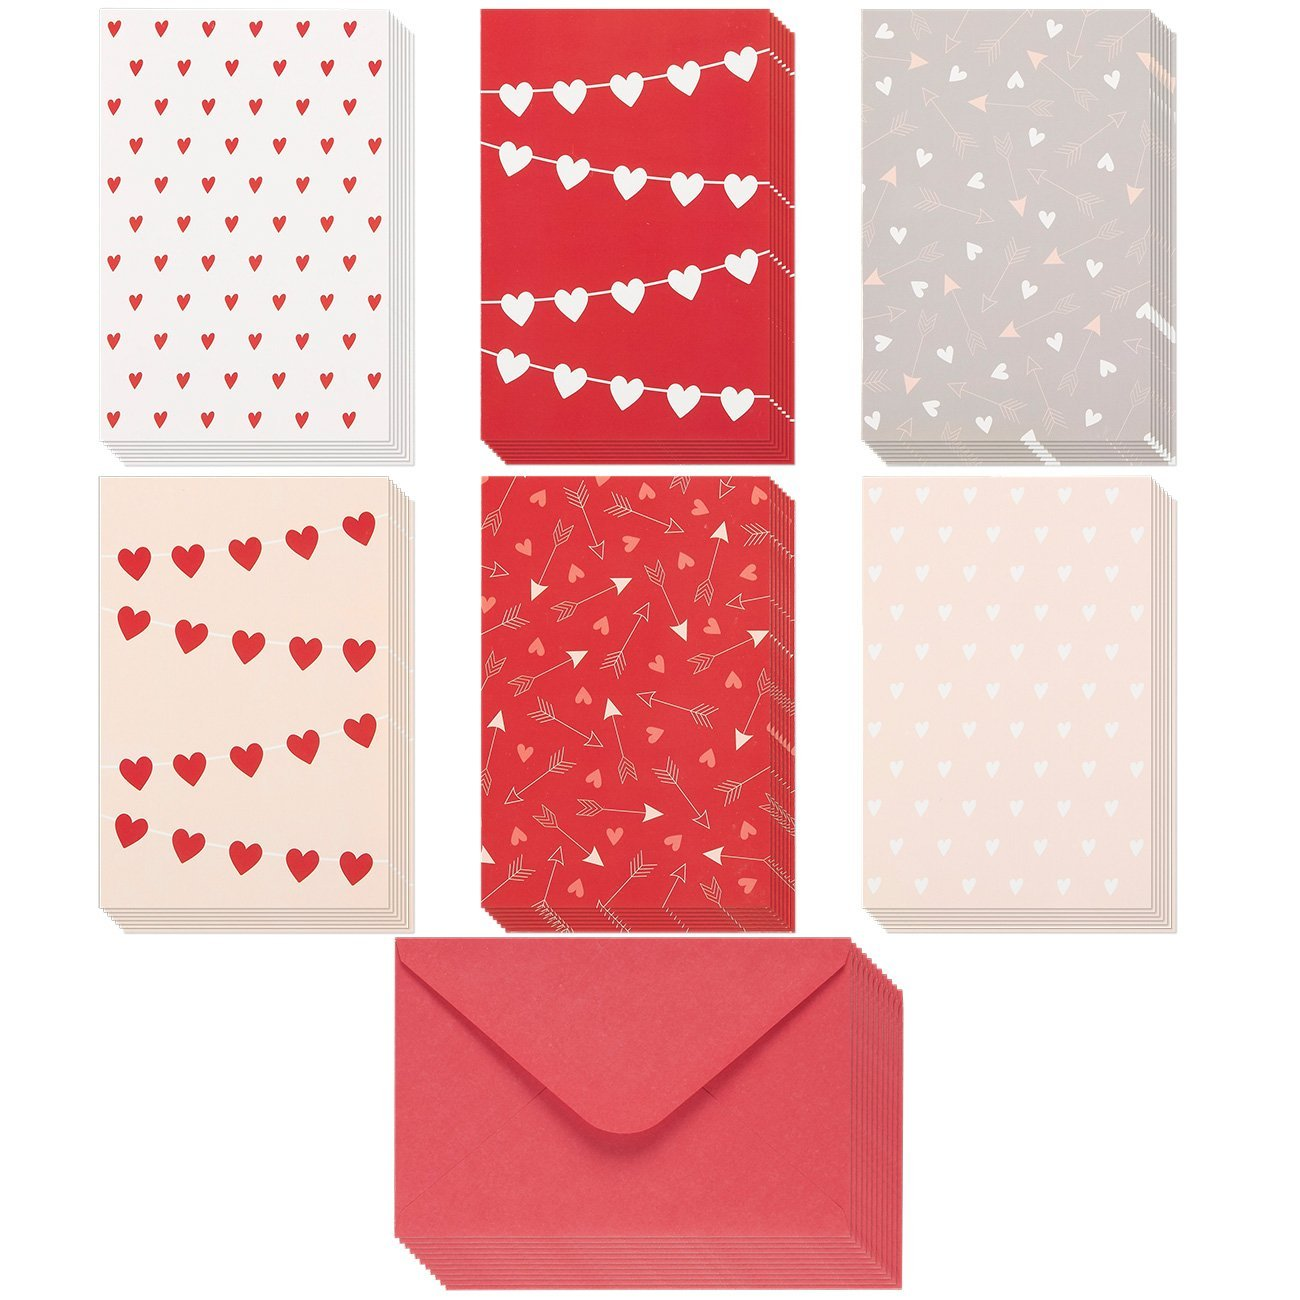 Valentine Cards- Heart Pattern Love Cards Romantic Greeting Cards with Red Envelopes For Valentine's Day